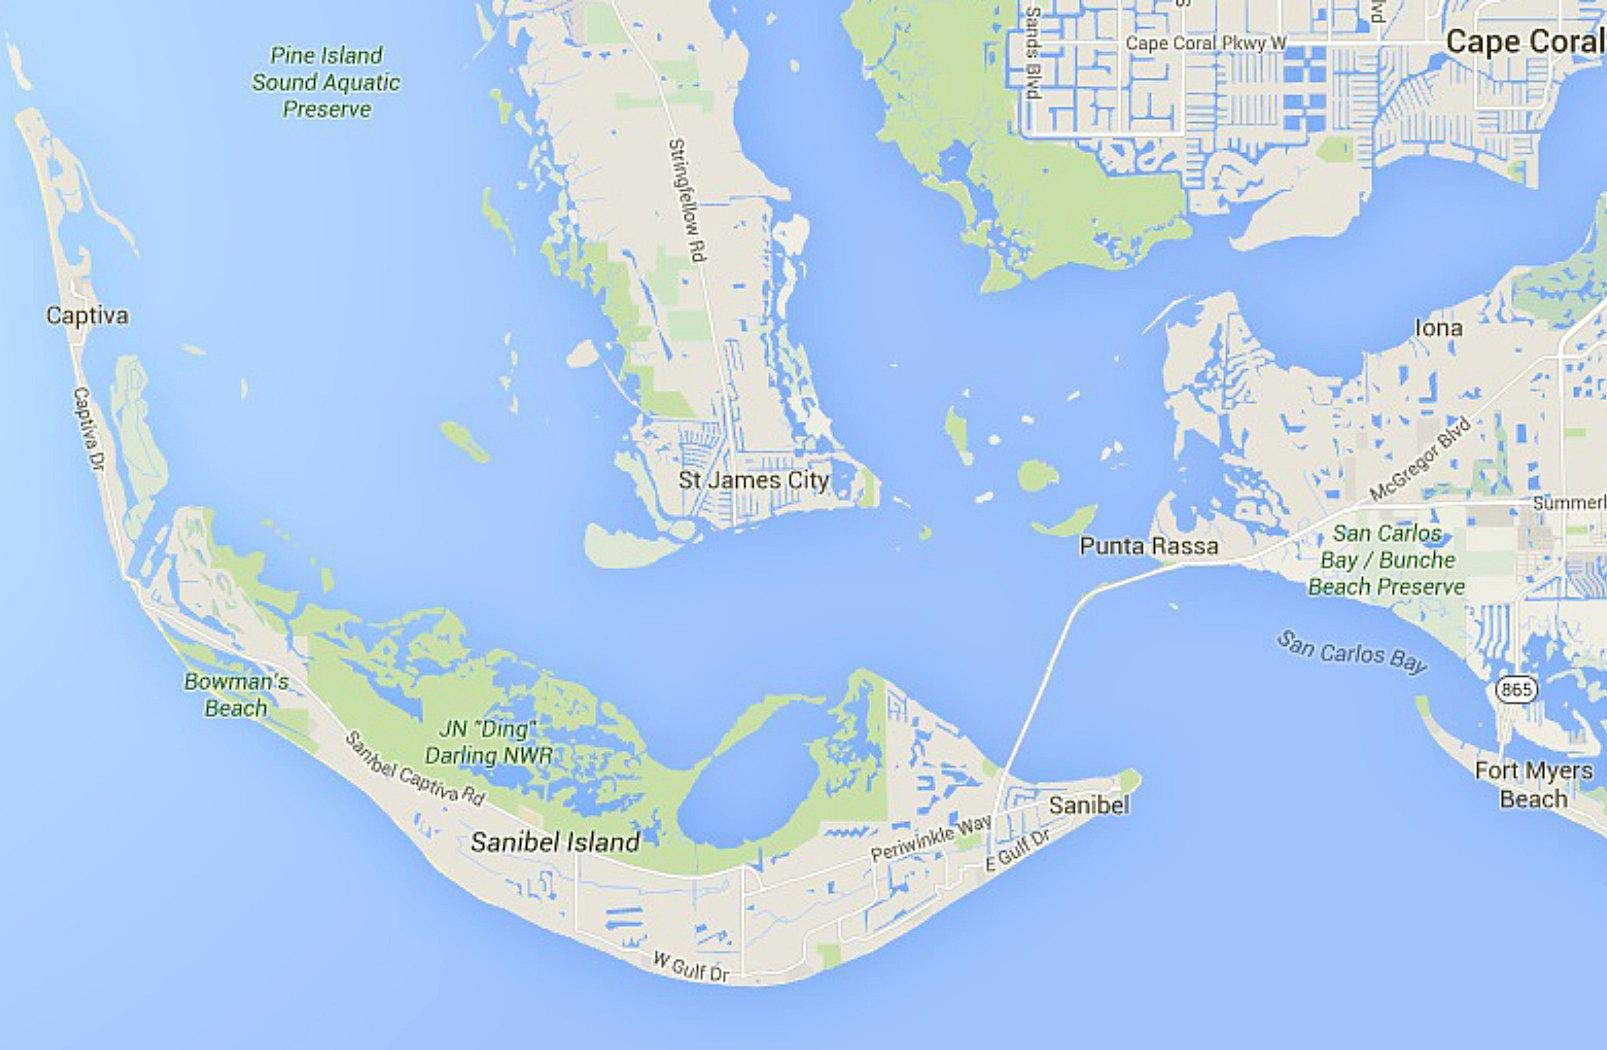 Ft Myers Map Of Florida.Maps Of Florida Orlando Tampa Miami Keys And More